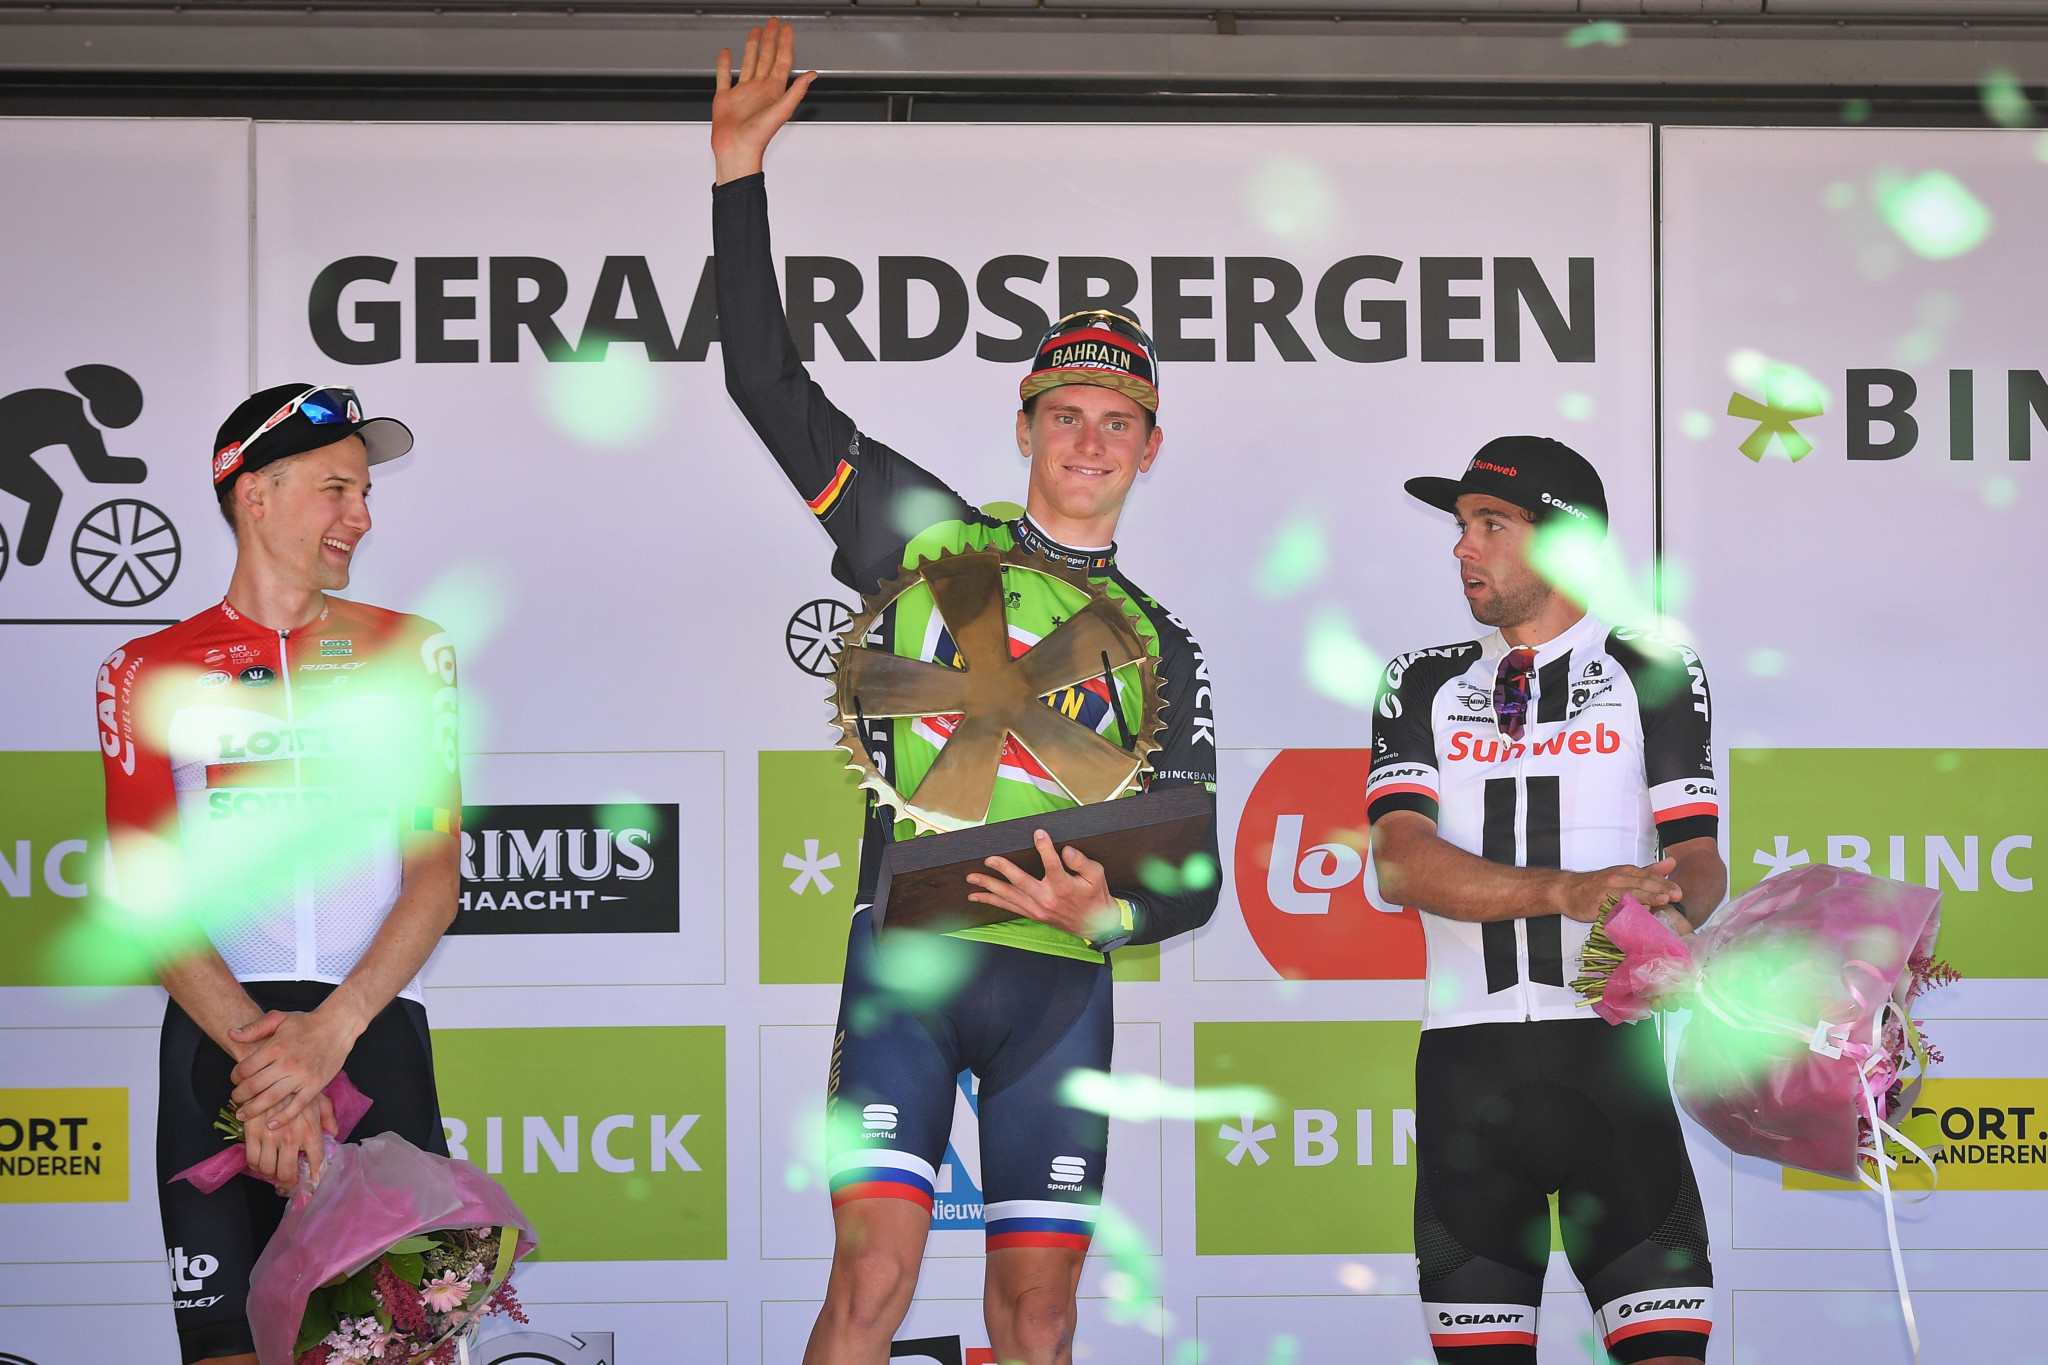 Strong sprinters set to dominate BinckBank Tour as UCI WorldTour continues in Belgium and Netherlands